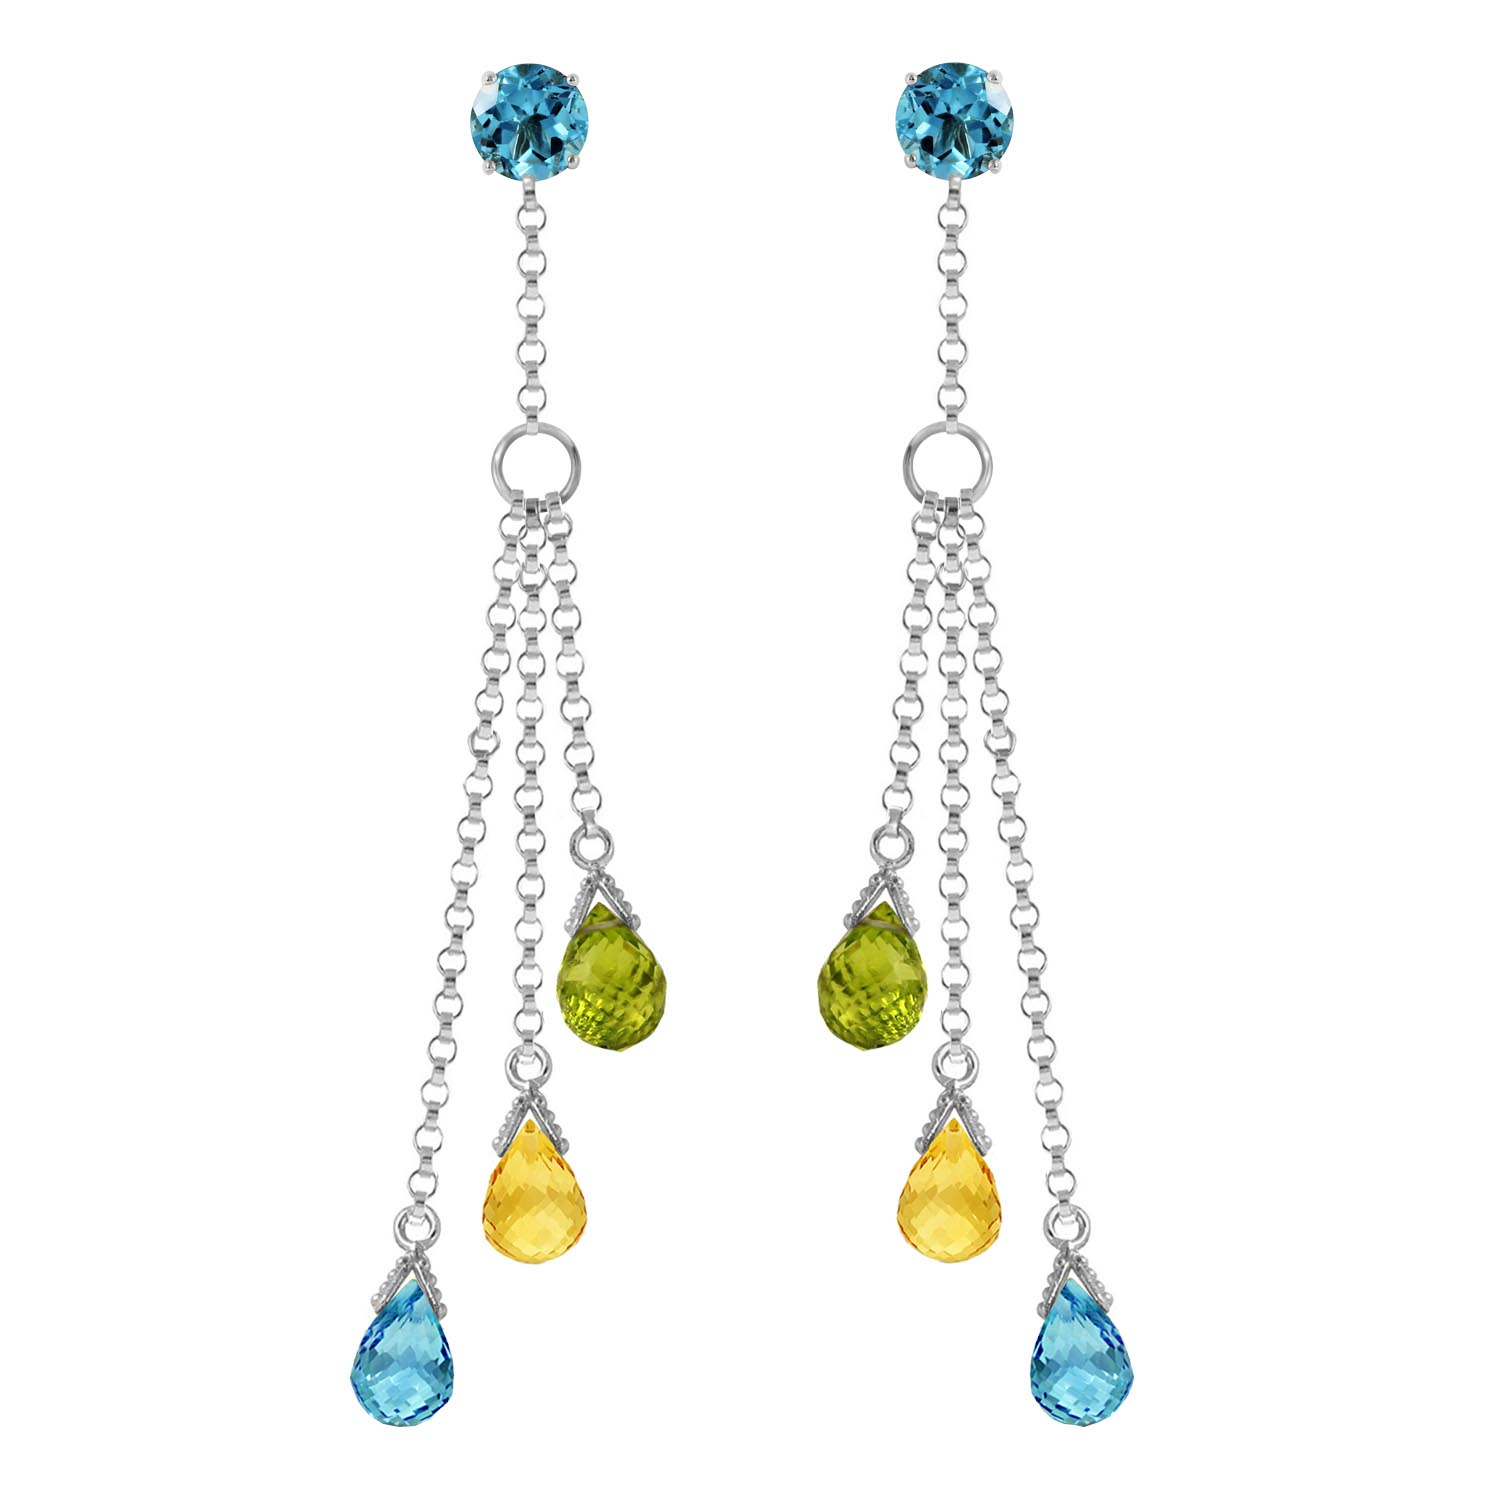 Blue Topaz, Citrine and Peridot Trilogy Droplet Earrings 5.75ctw in 9ct White Gold